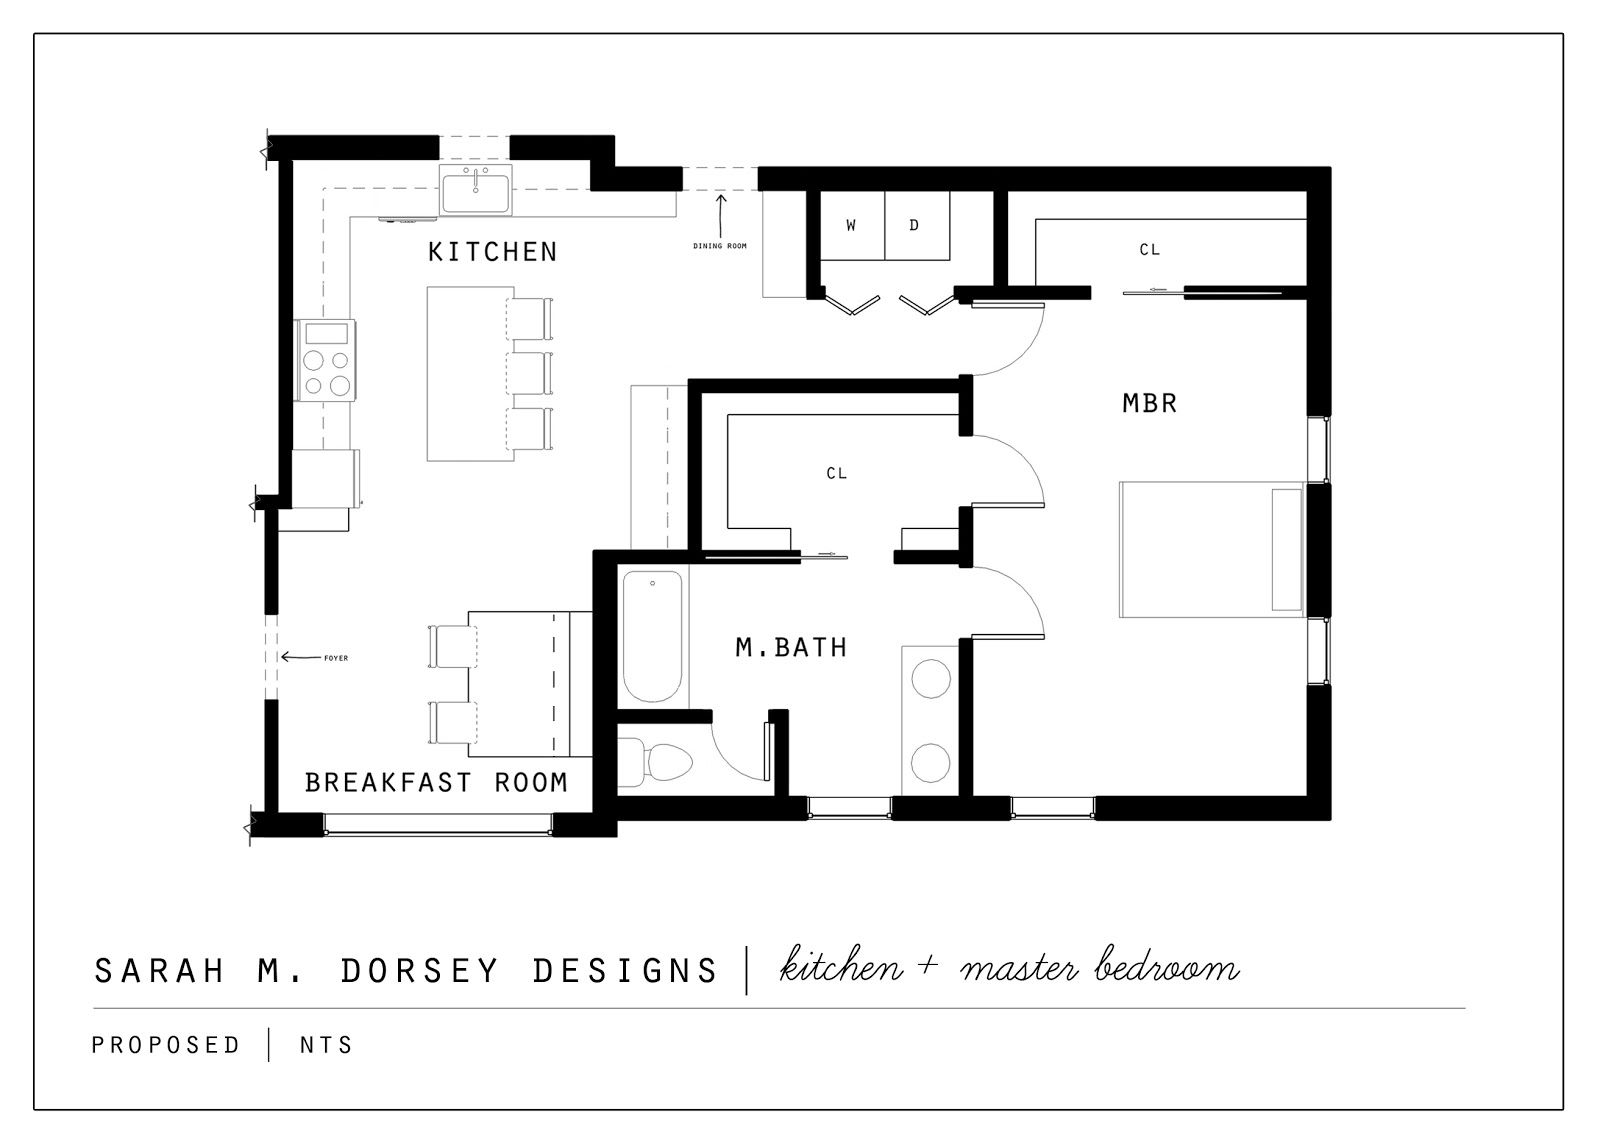 Floor plans for master bedroom additions bedroom addition plans master bedroom